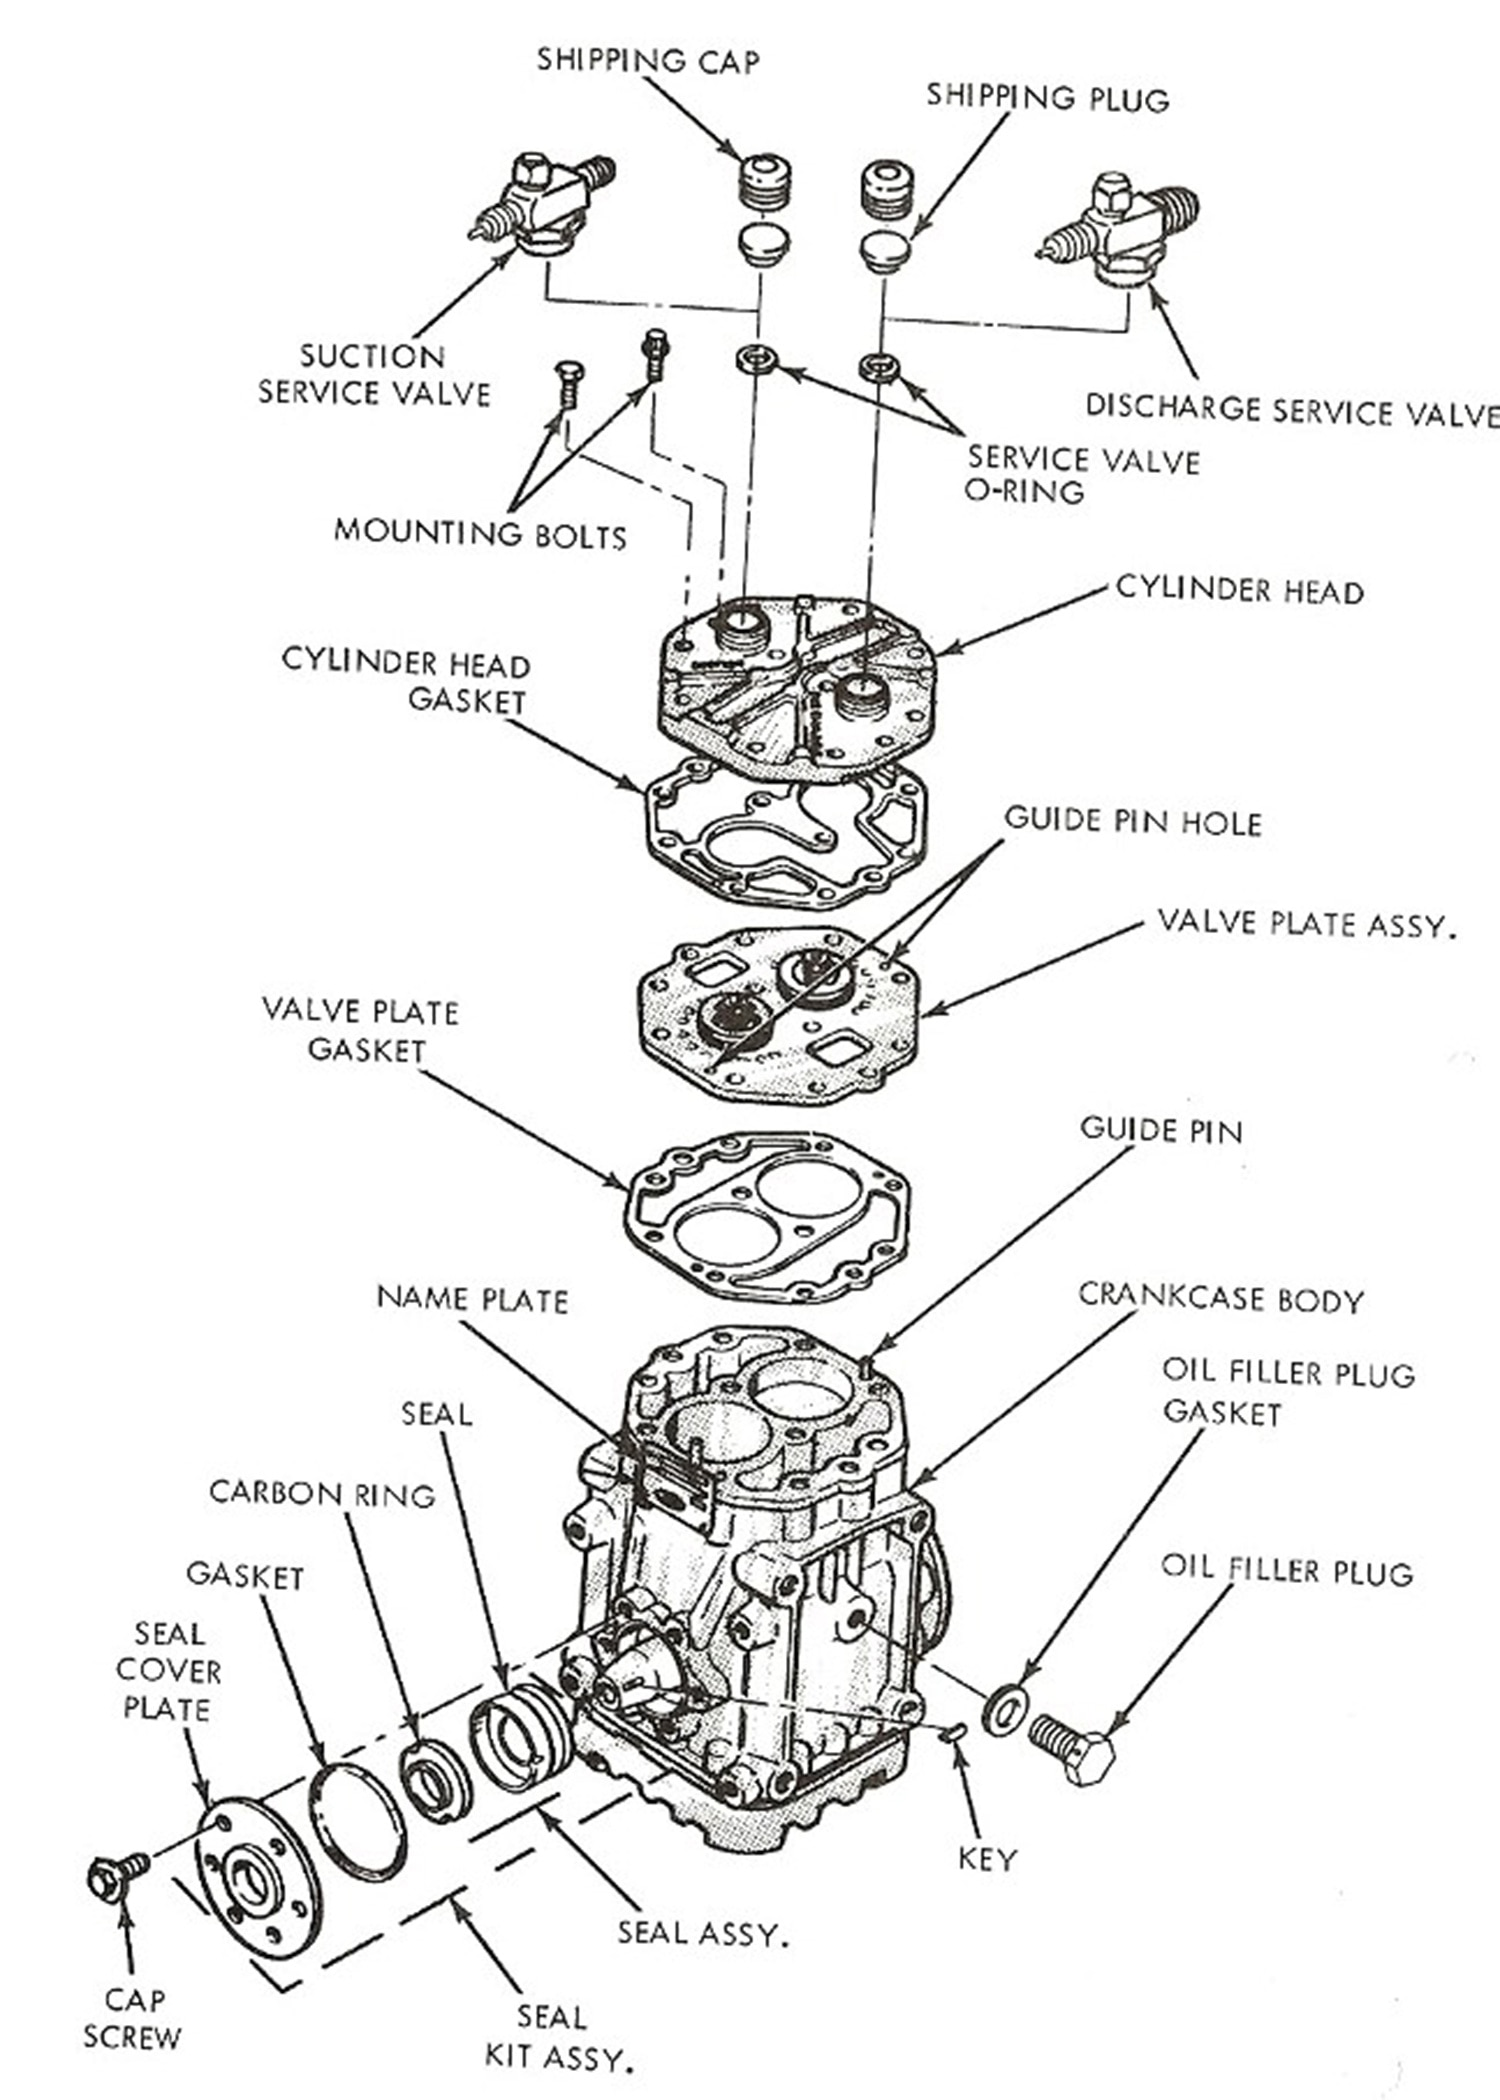 Refrigerator pressor wiring diagram on mopar wiring diagrams